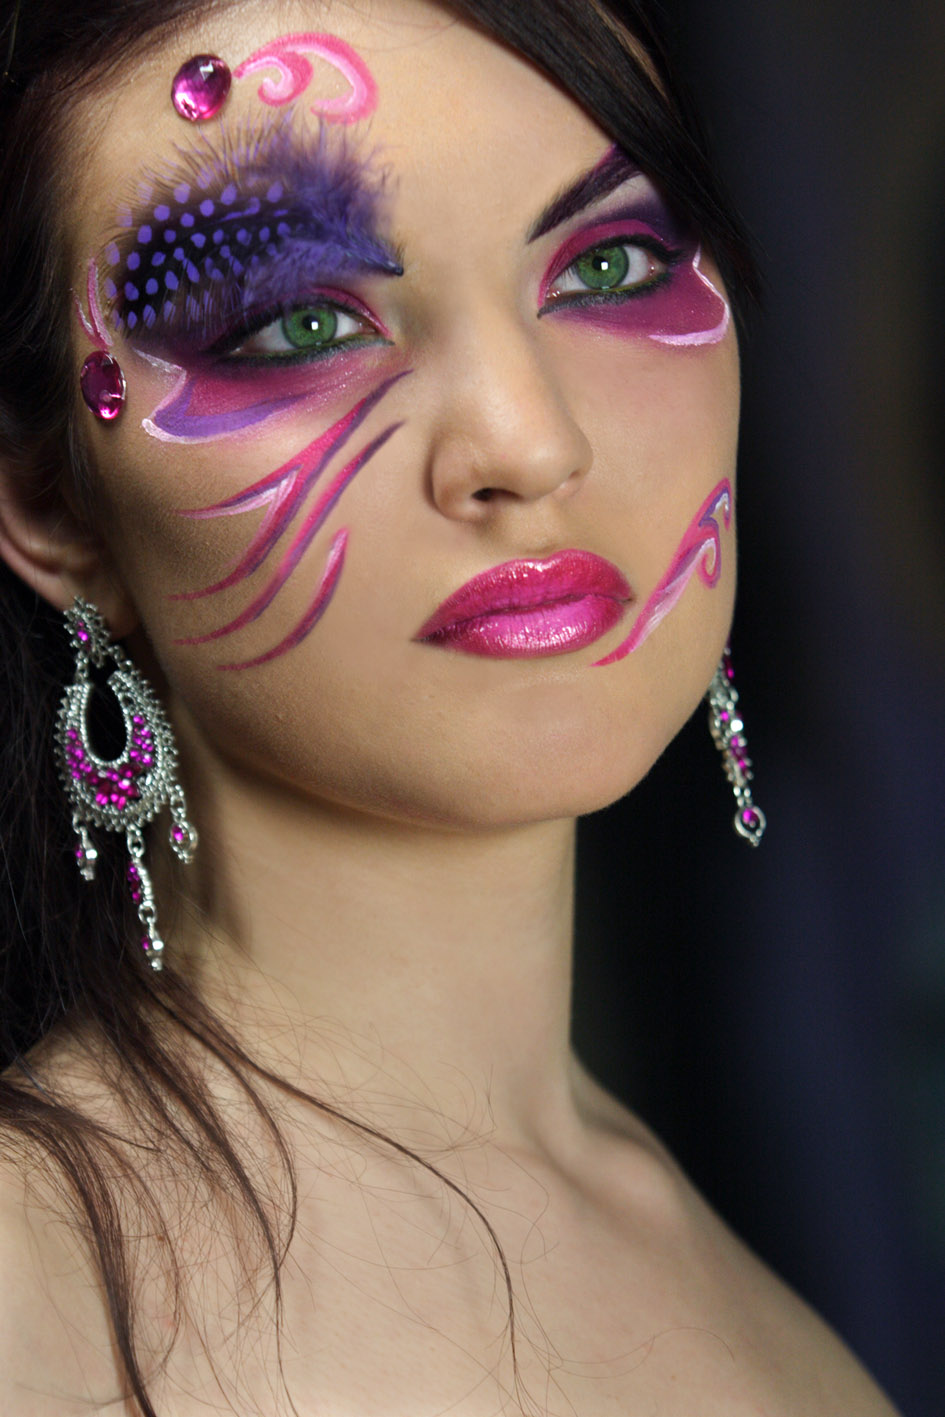 Maquillage carnaval femme facile - Maquillage horreur facile ...